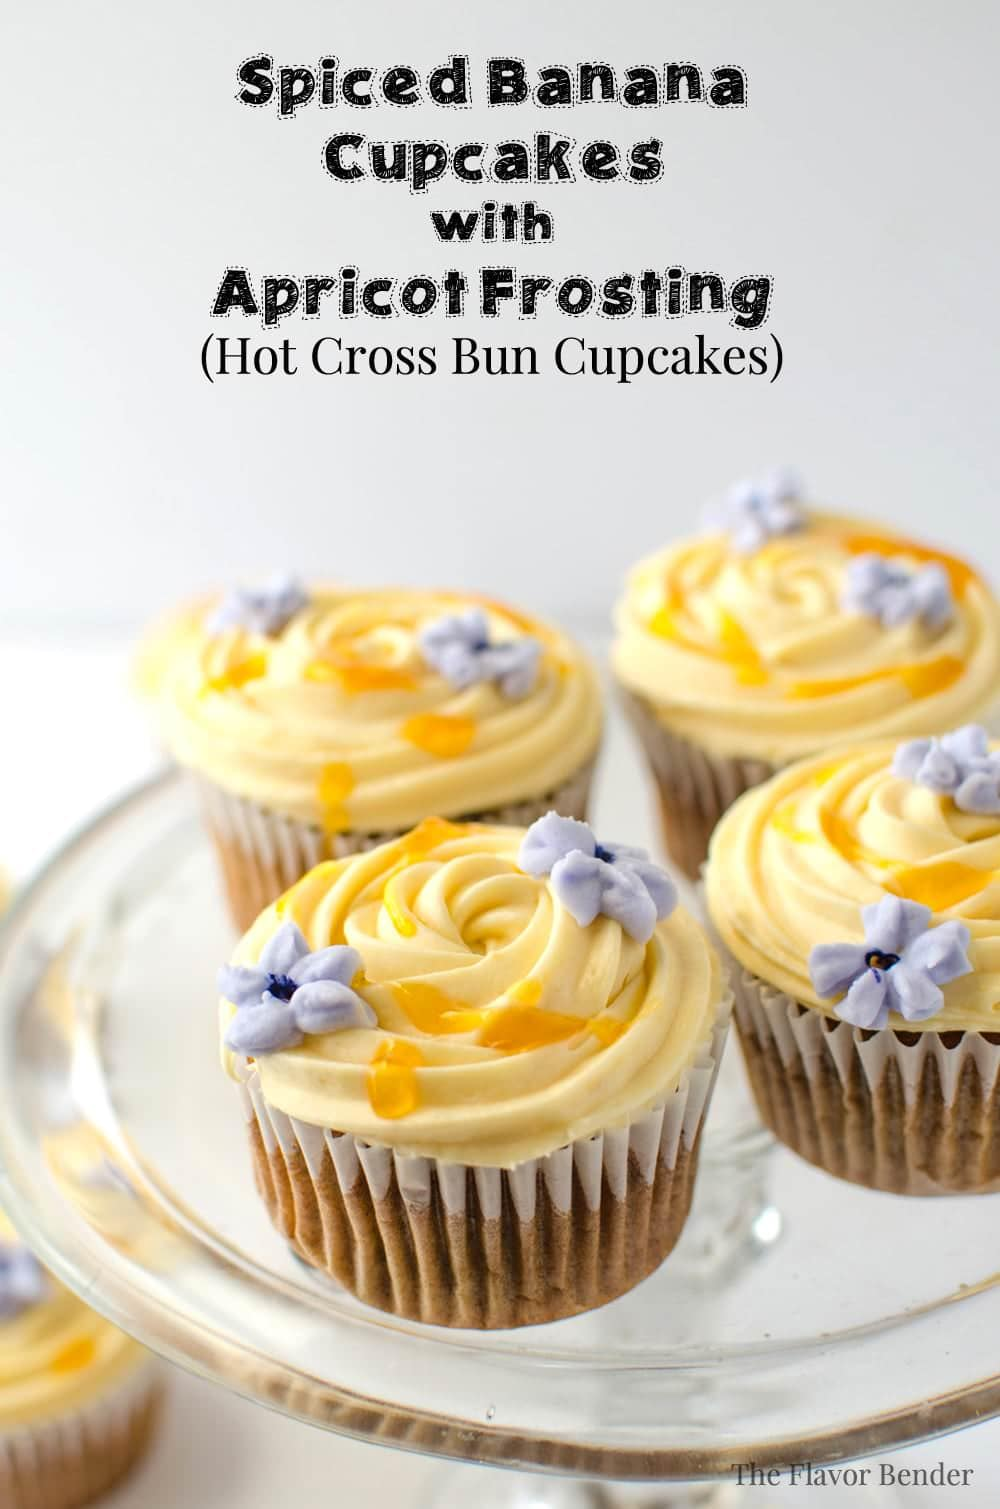 Spiced Banana Cupcakes with Apricot Frosting Hot Cross Bun Cupcakes